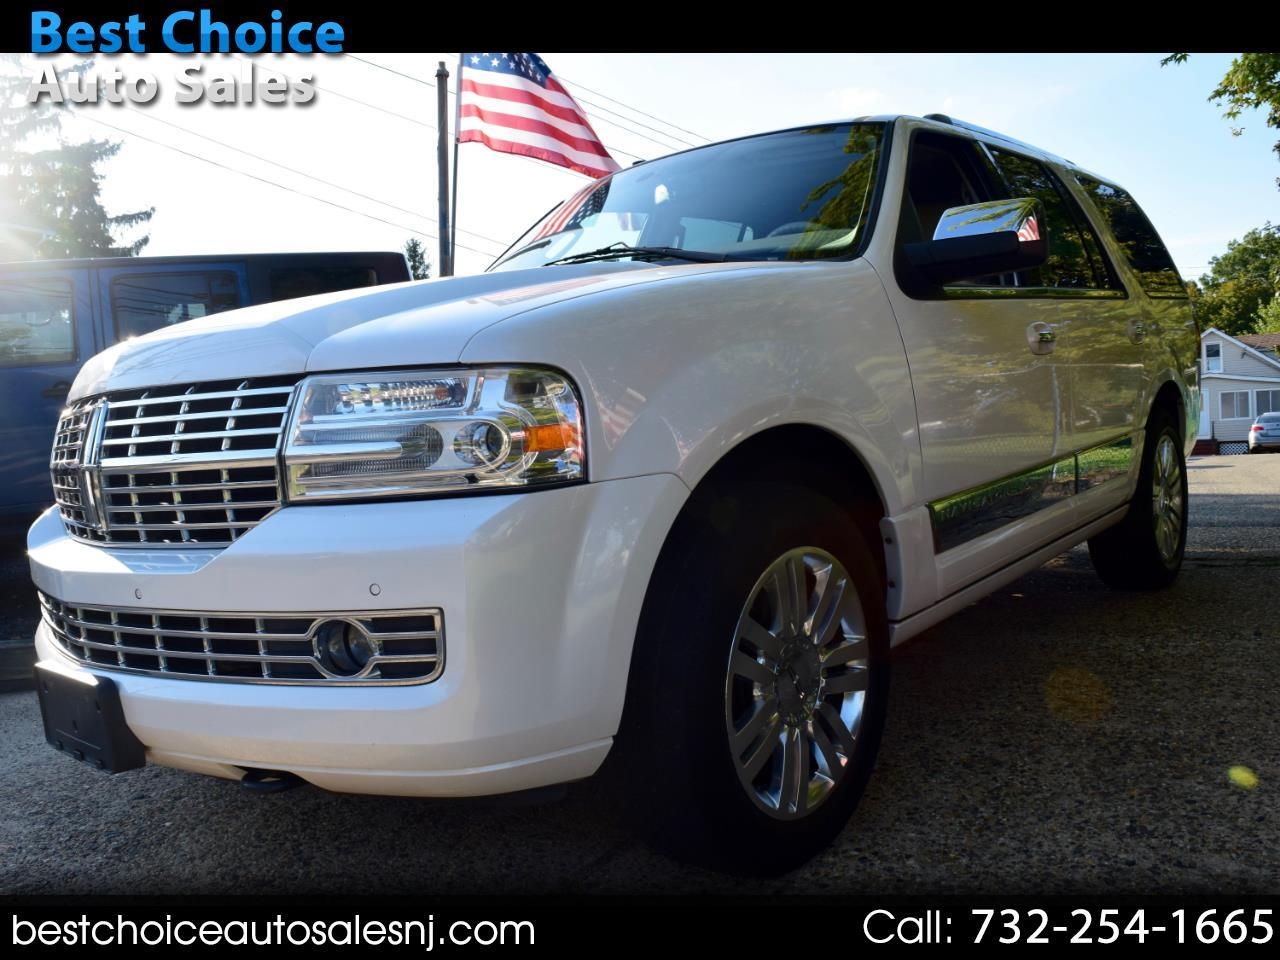 2011 Lincoln Navigator 4WD 4dr